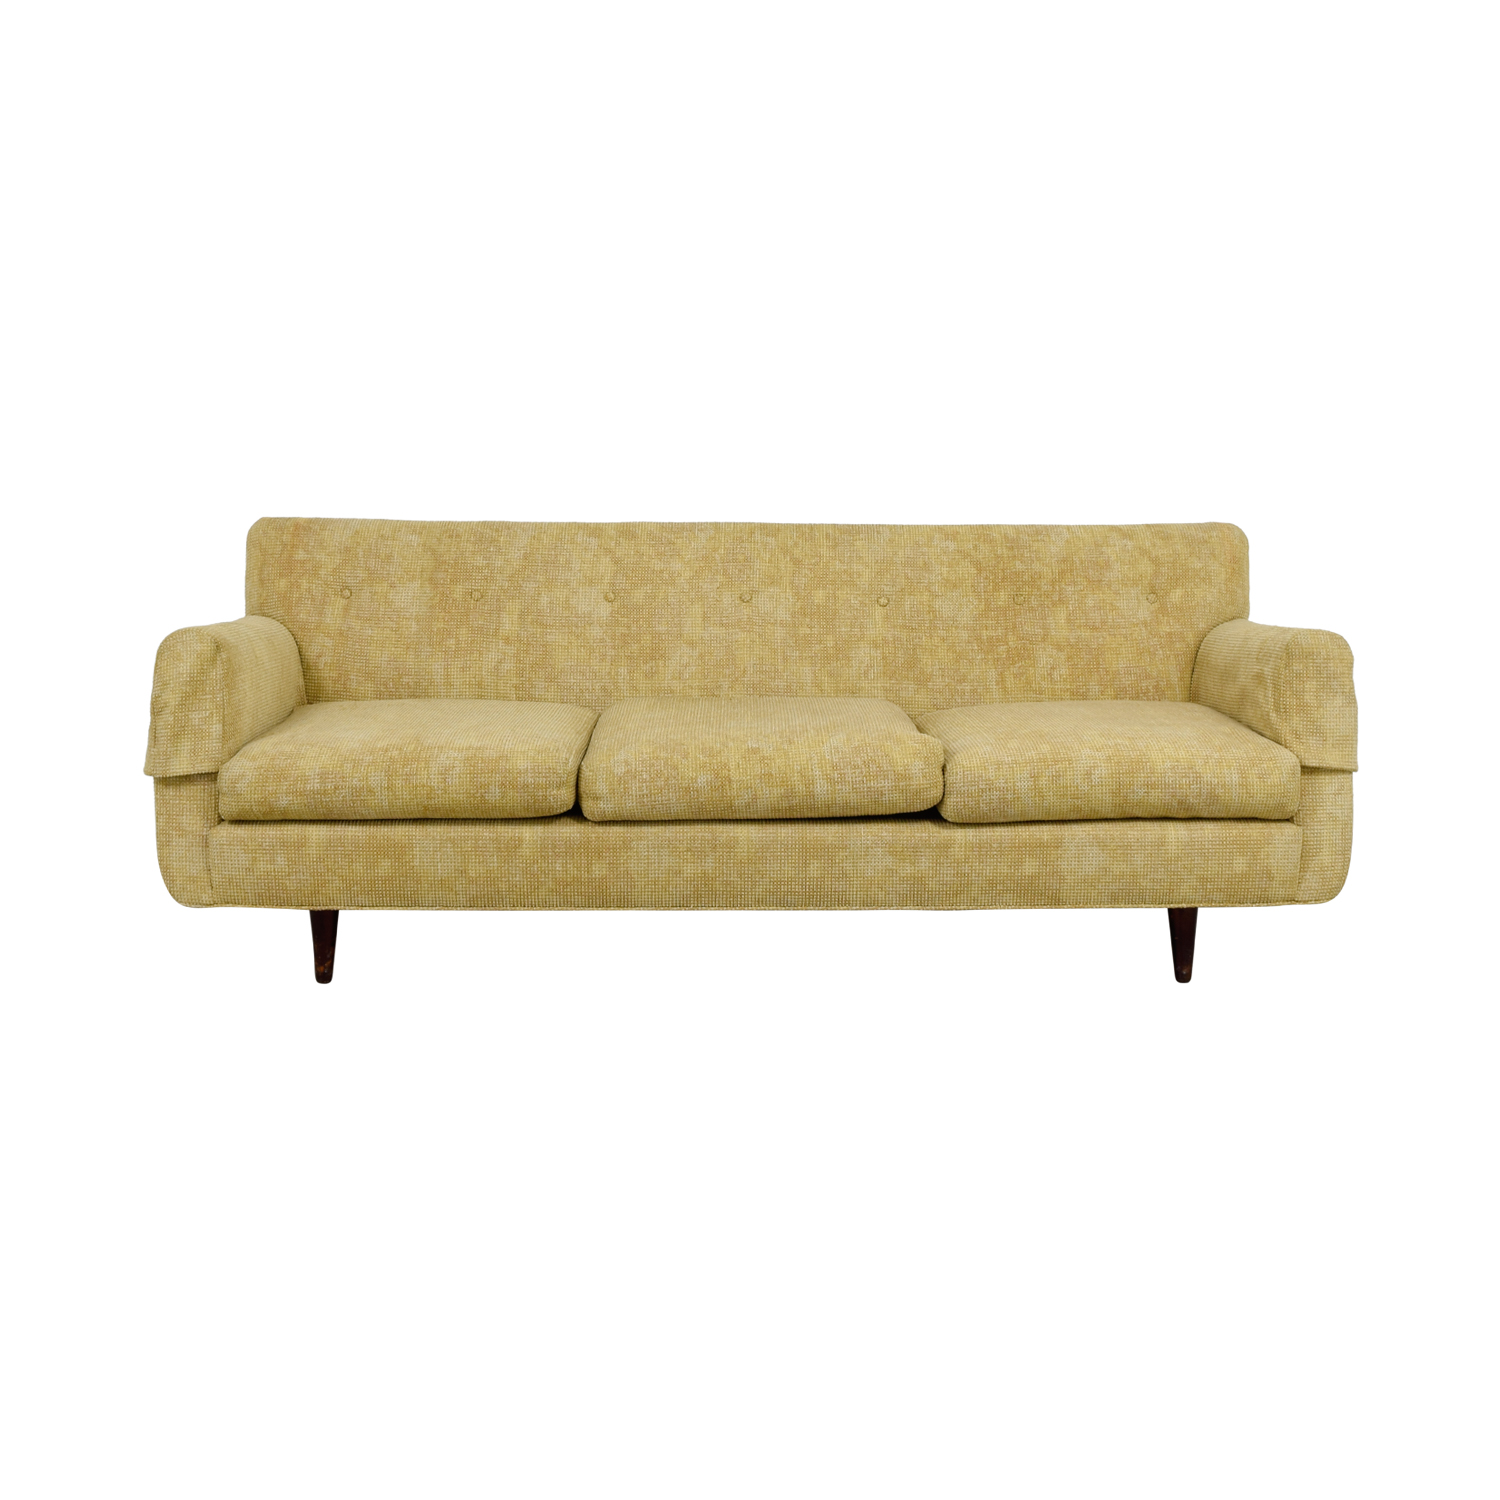 Custom Tan Mid Century Three Cushion Sofa for sale